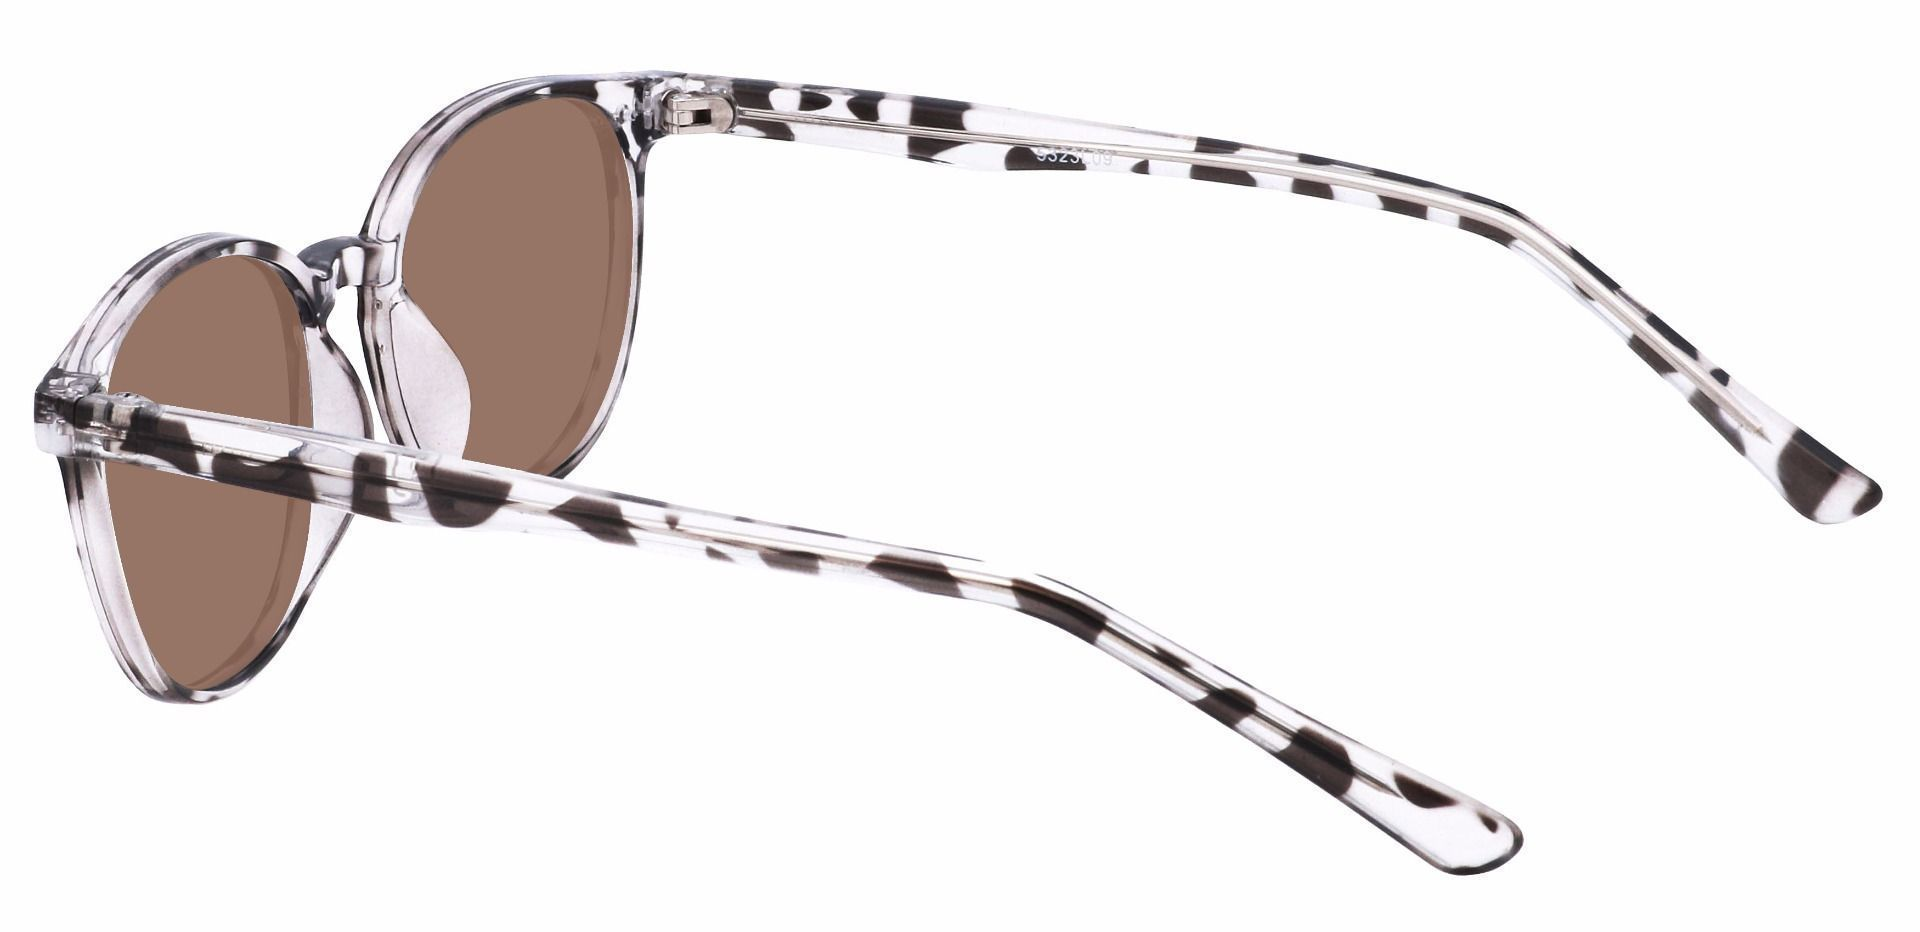 Holstein Oval Prescription Sunglasses - Leopard Frame With Brown Lenses